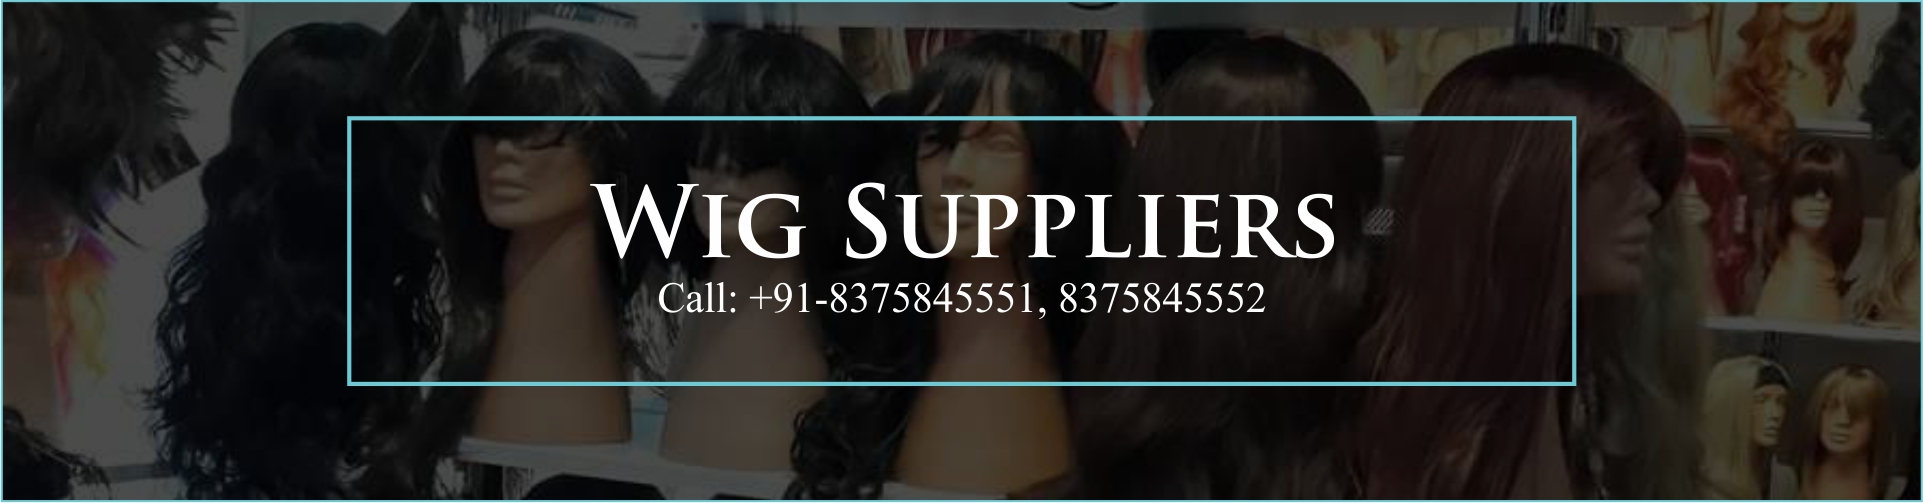 Wig Suppliers in Delhi - PHC Hair Clinic